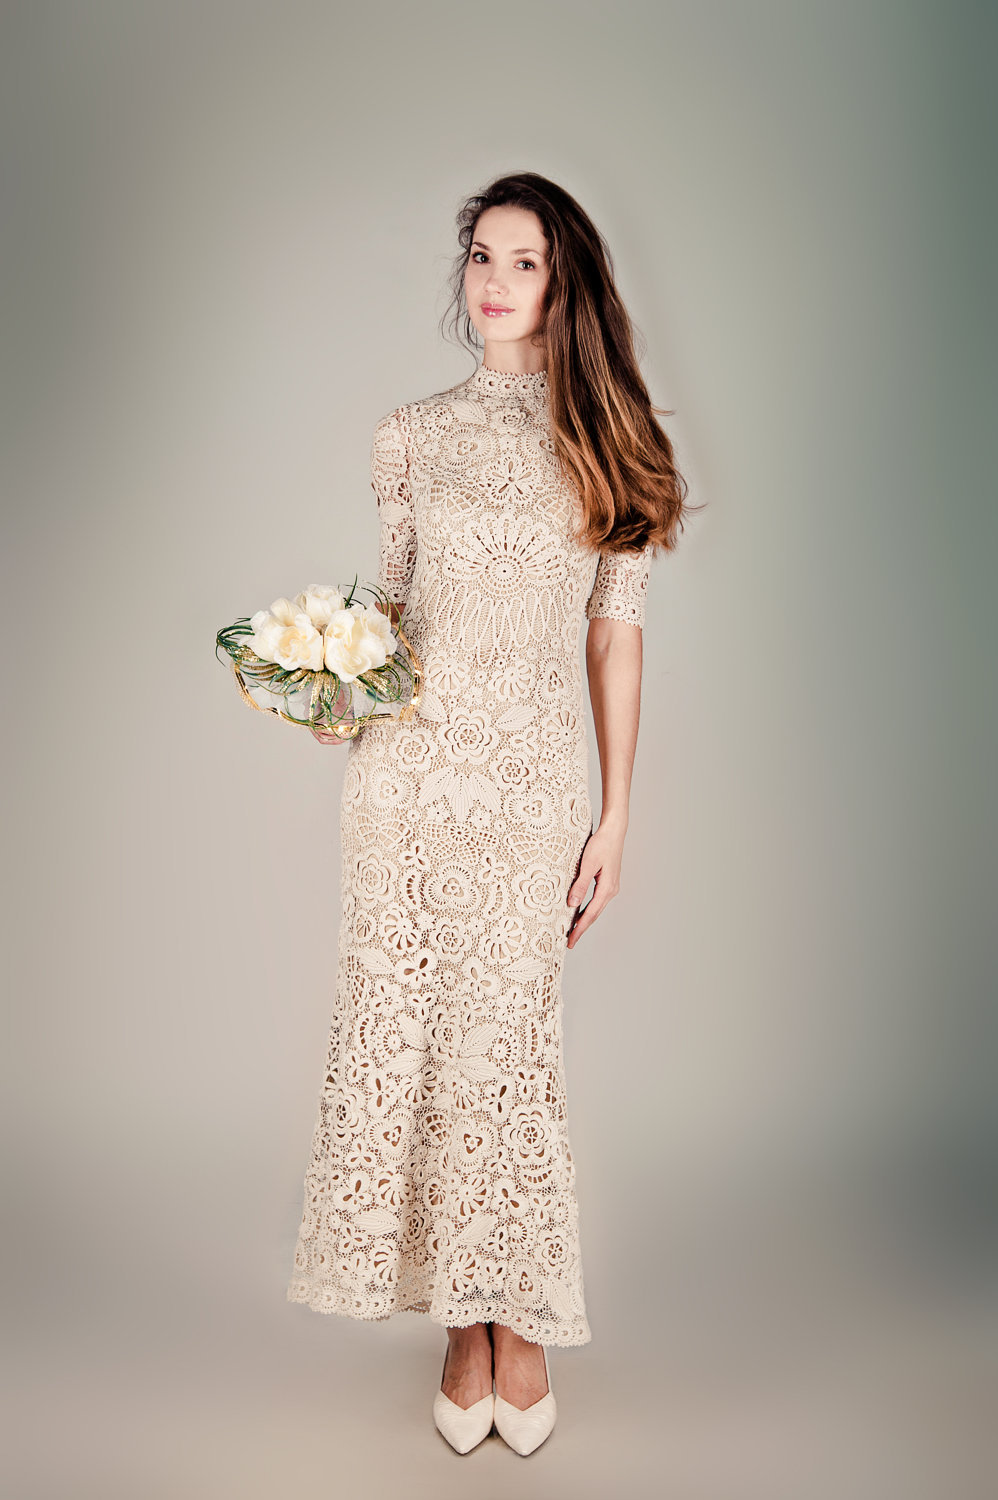 unique wedding dresses non white bridal gown beige crochet